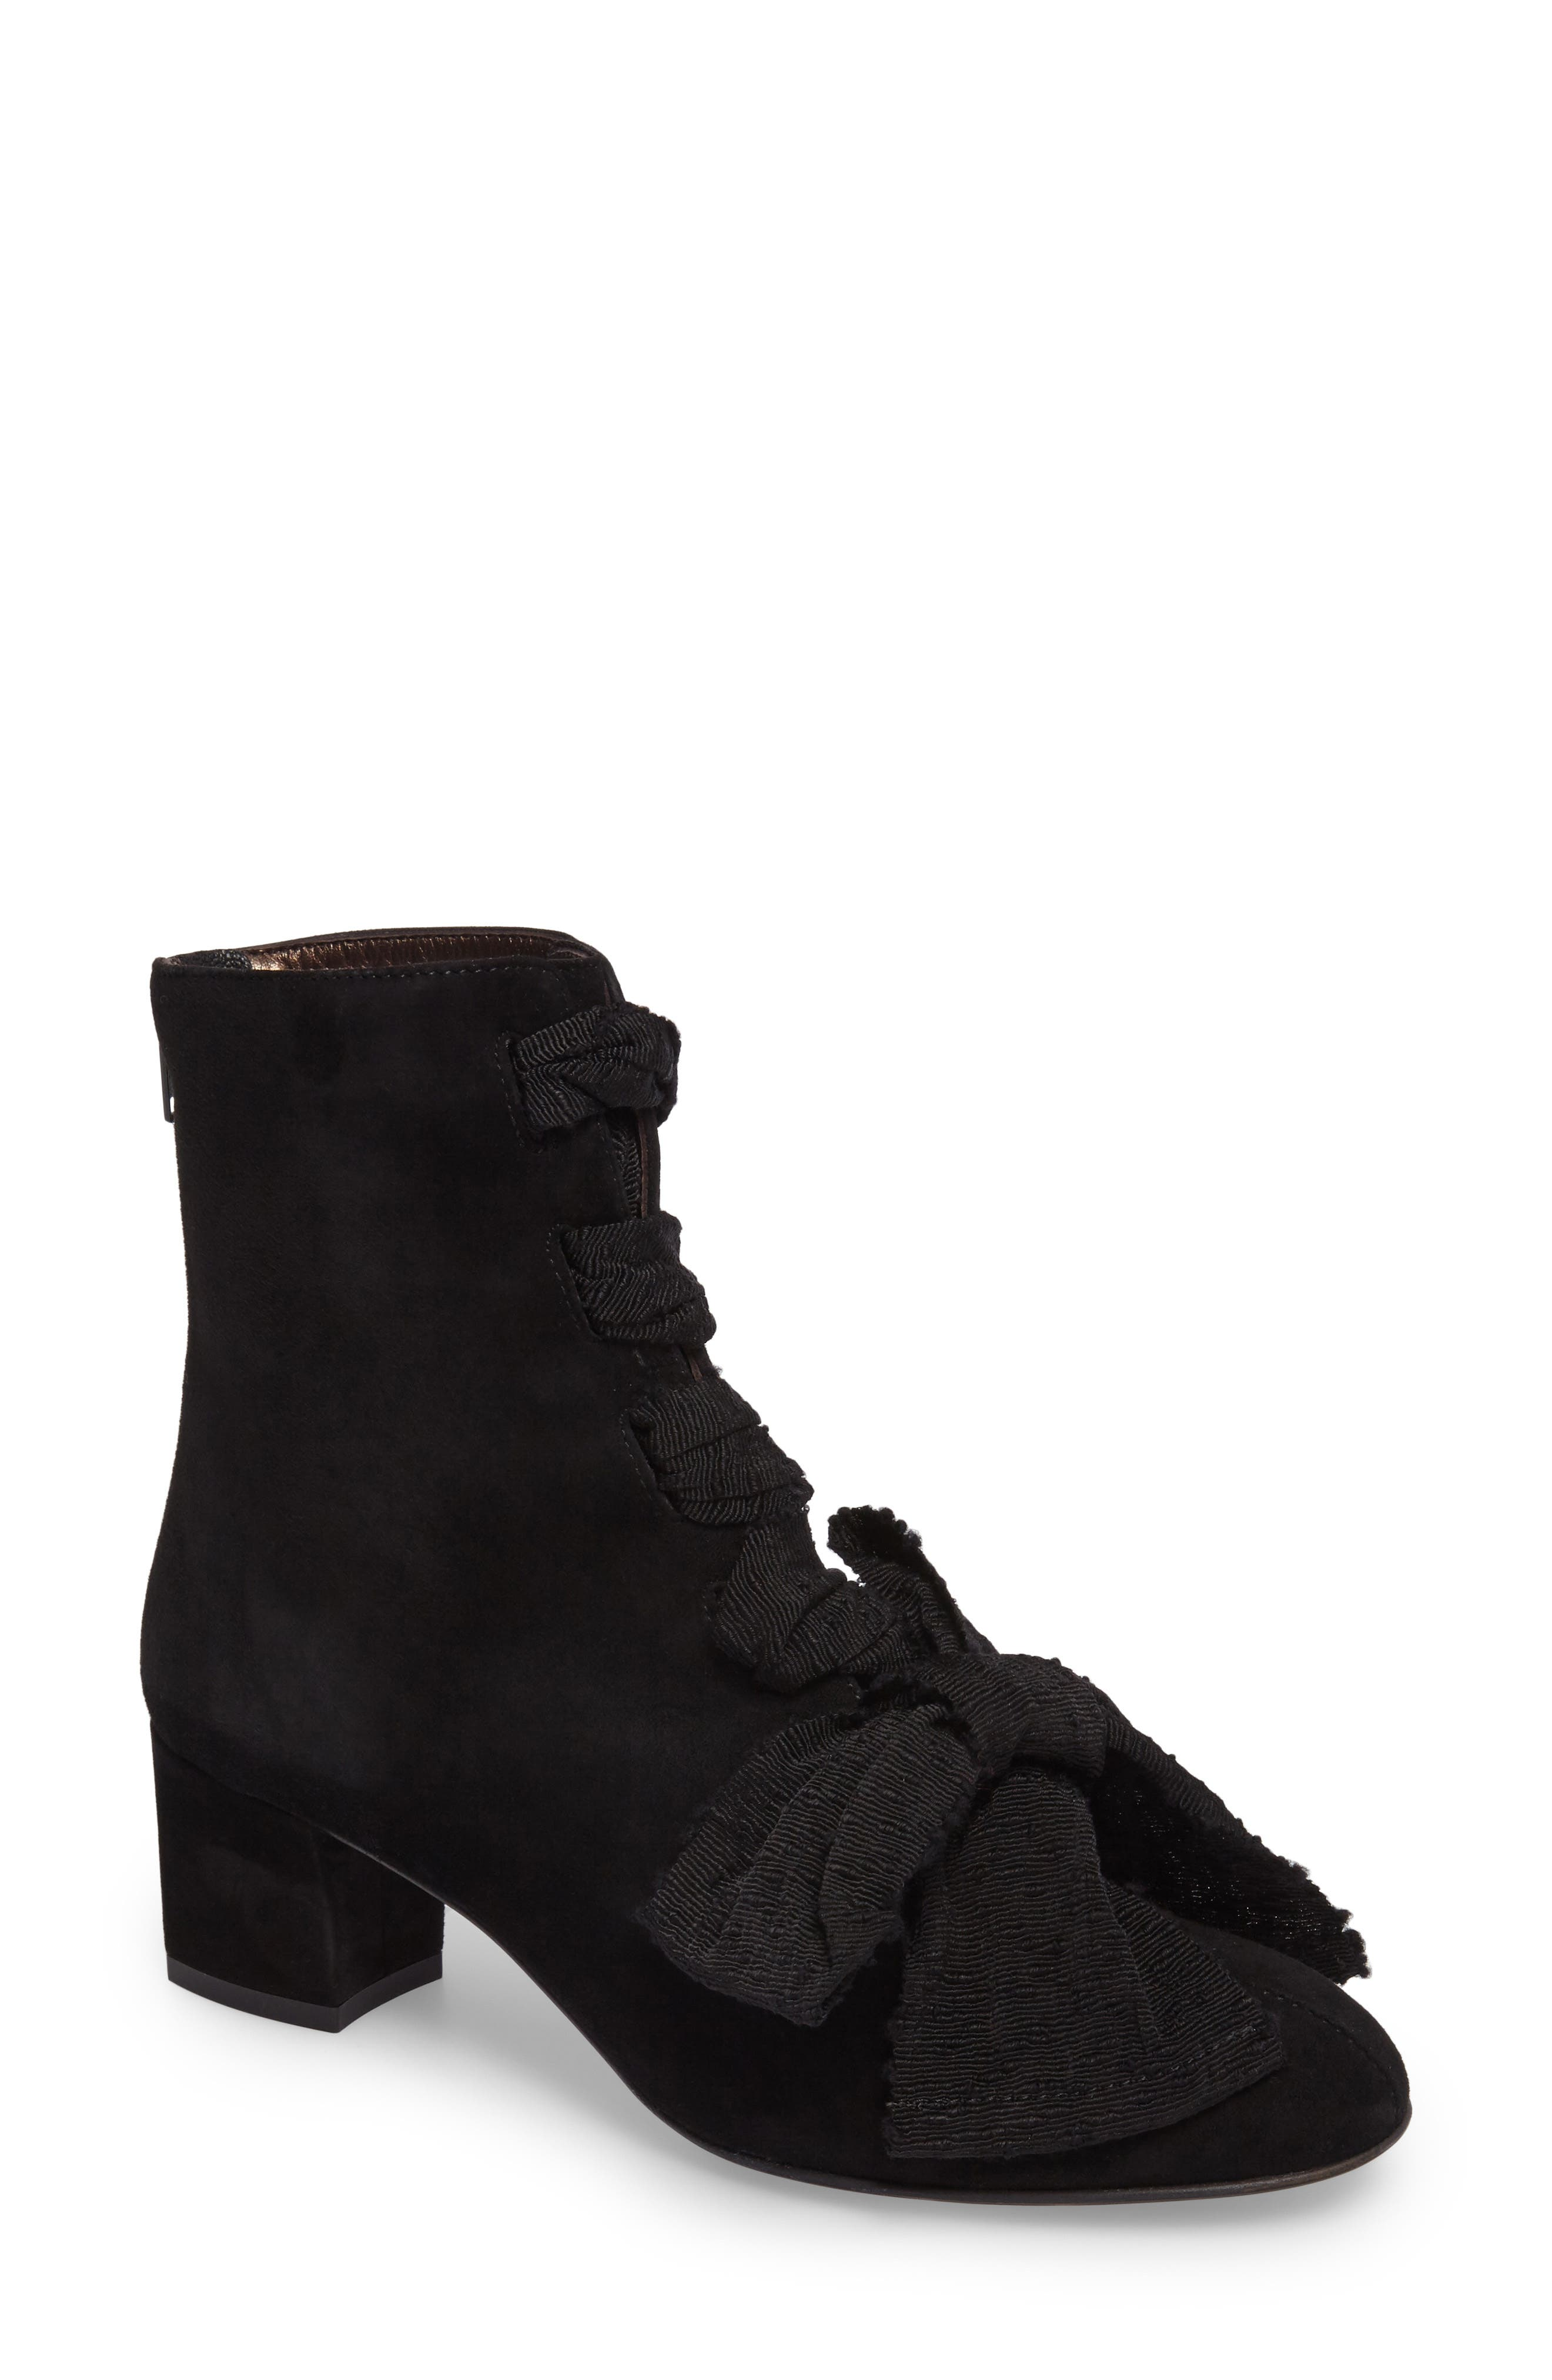 Bow Bootie,                         Main,                         color, 002